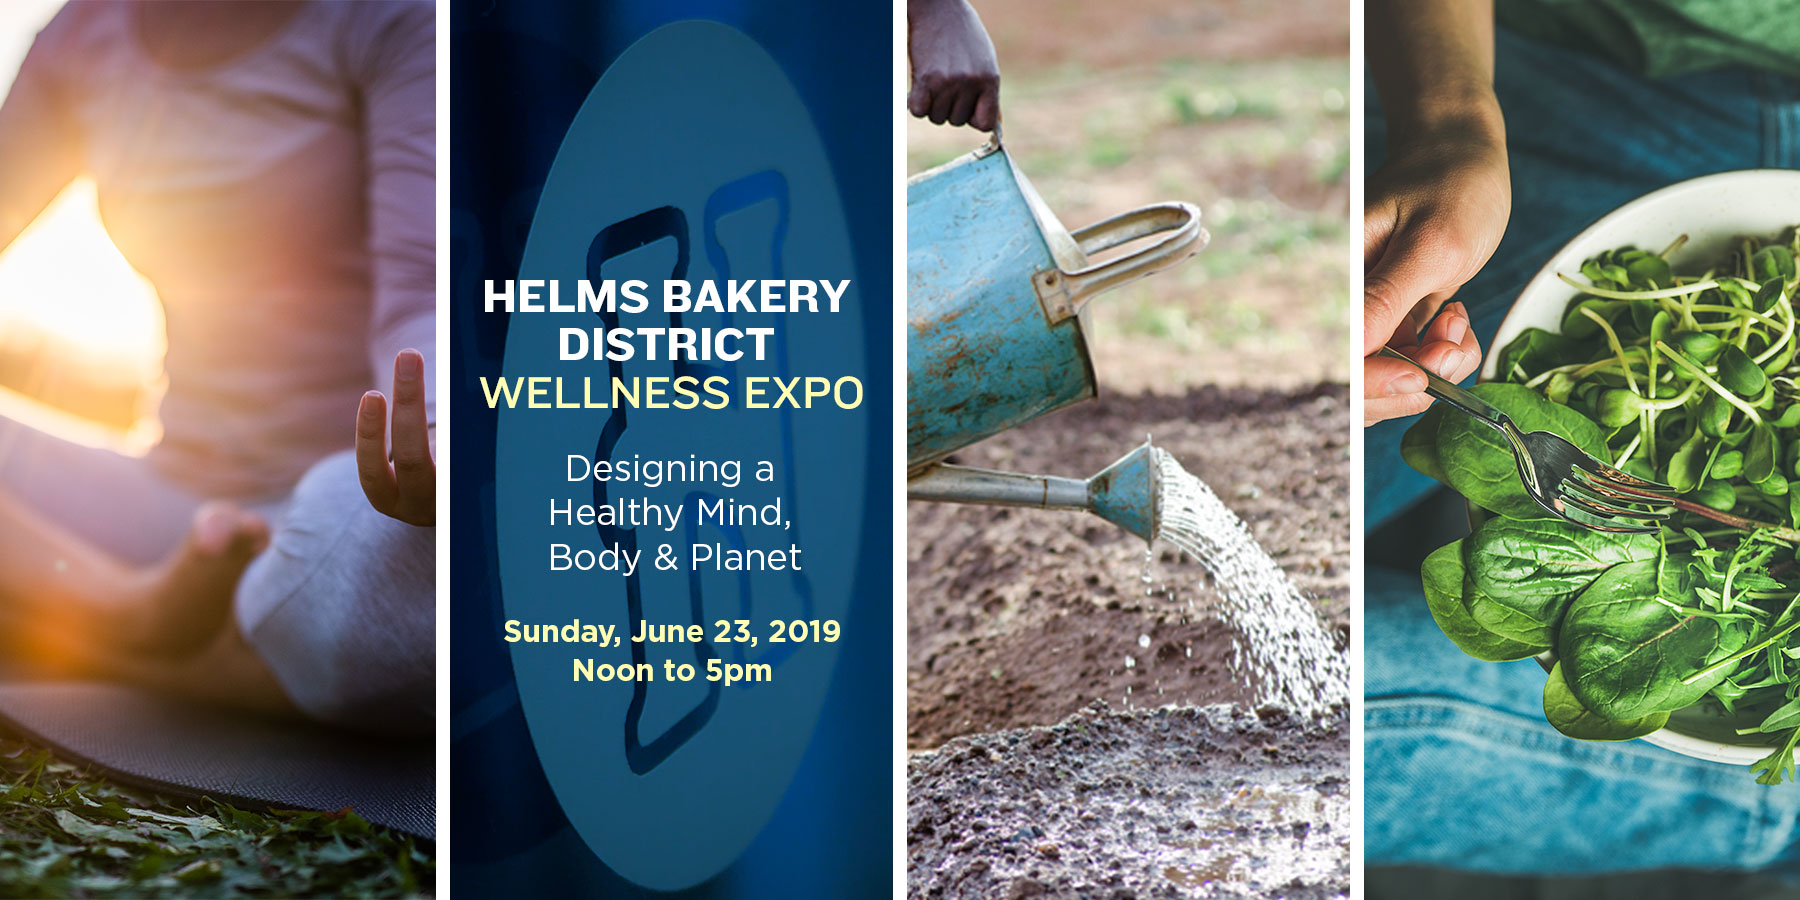 Wellness Expo 2019 | Helms Bakery District